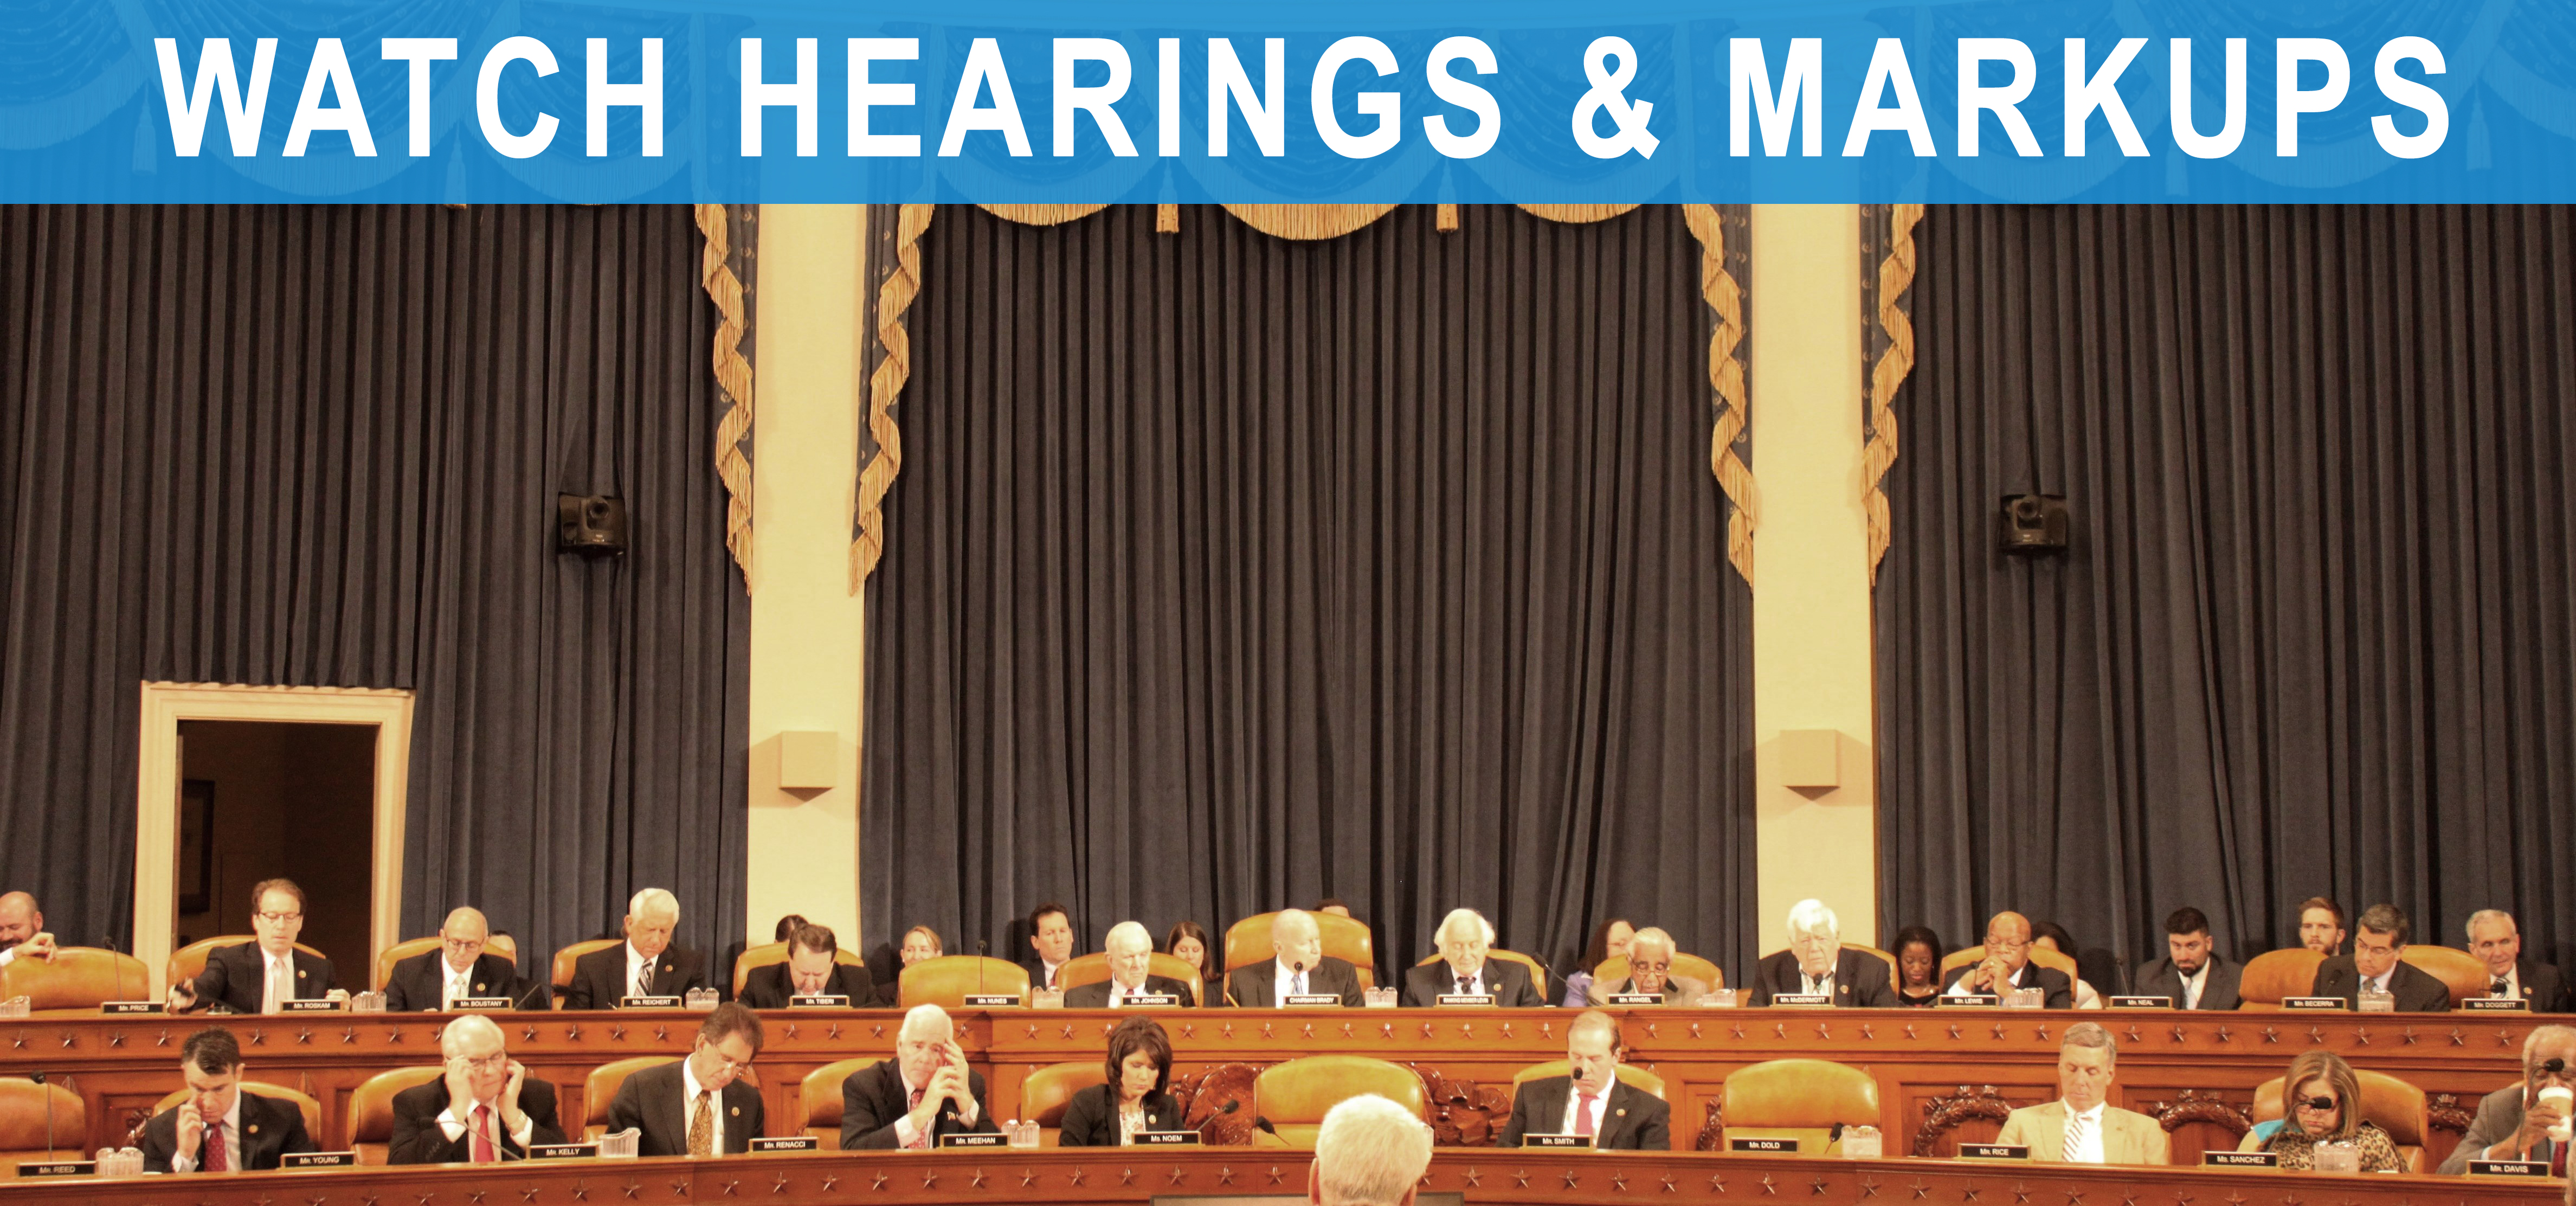 Watch Hearings and Markups